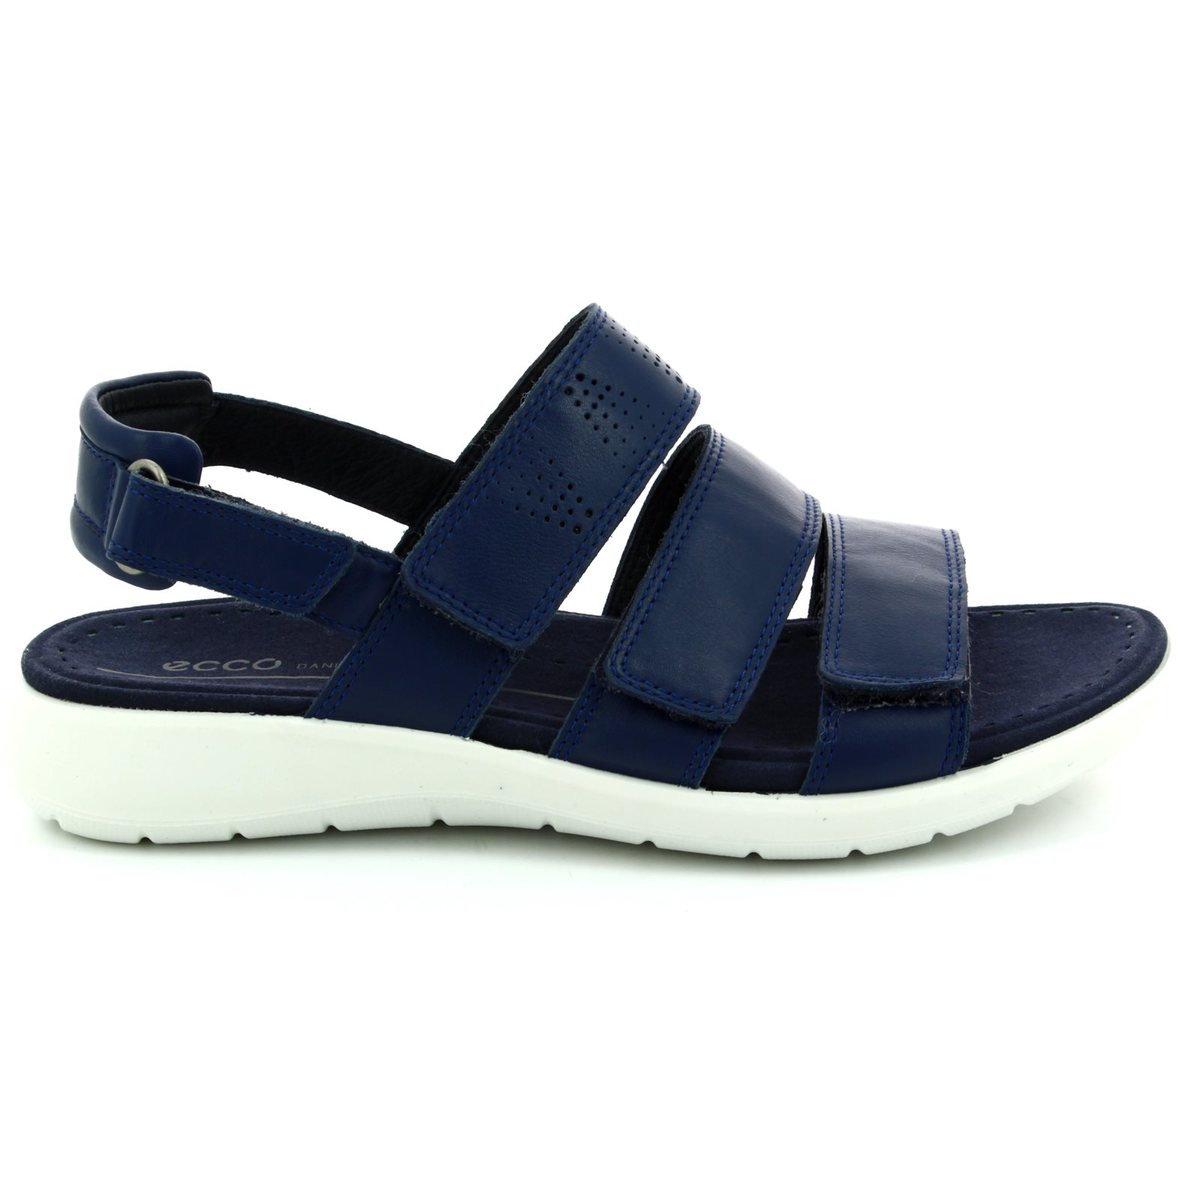 4255064ce65d ECCO Walking Sandals - Navy - 218523 01048 SOFT 5 SANDAL